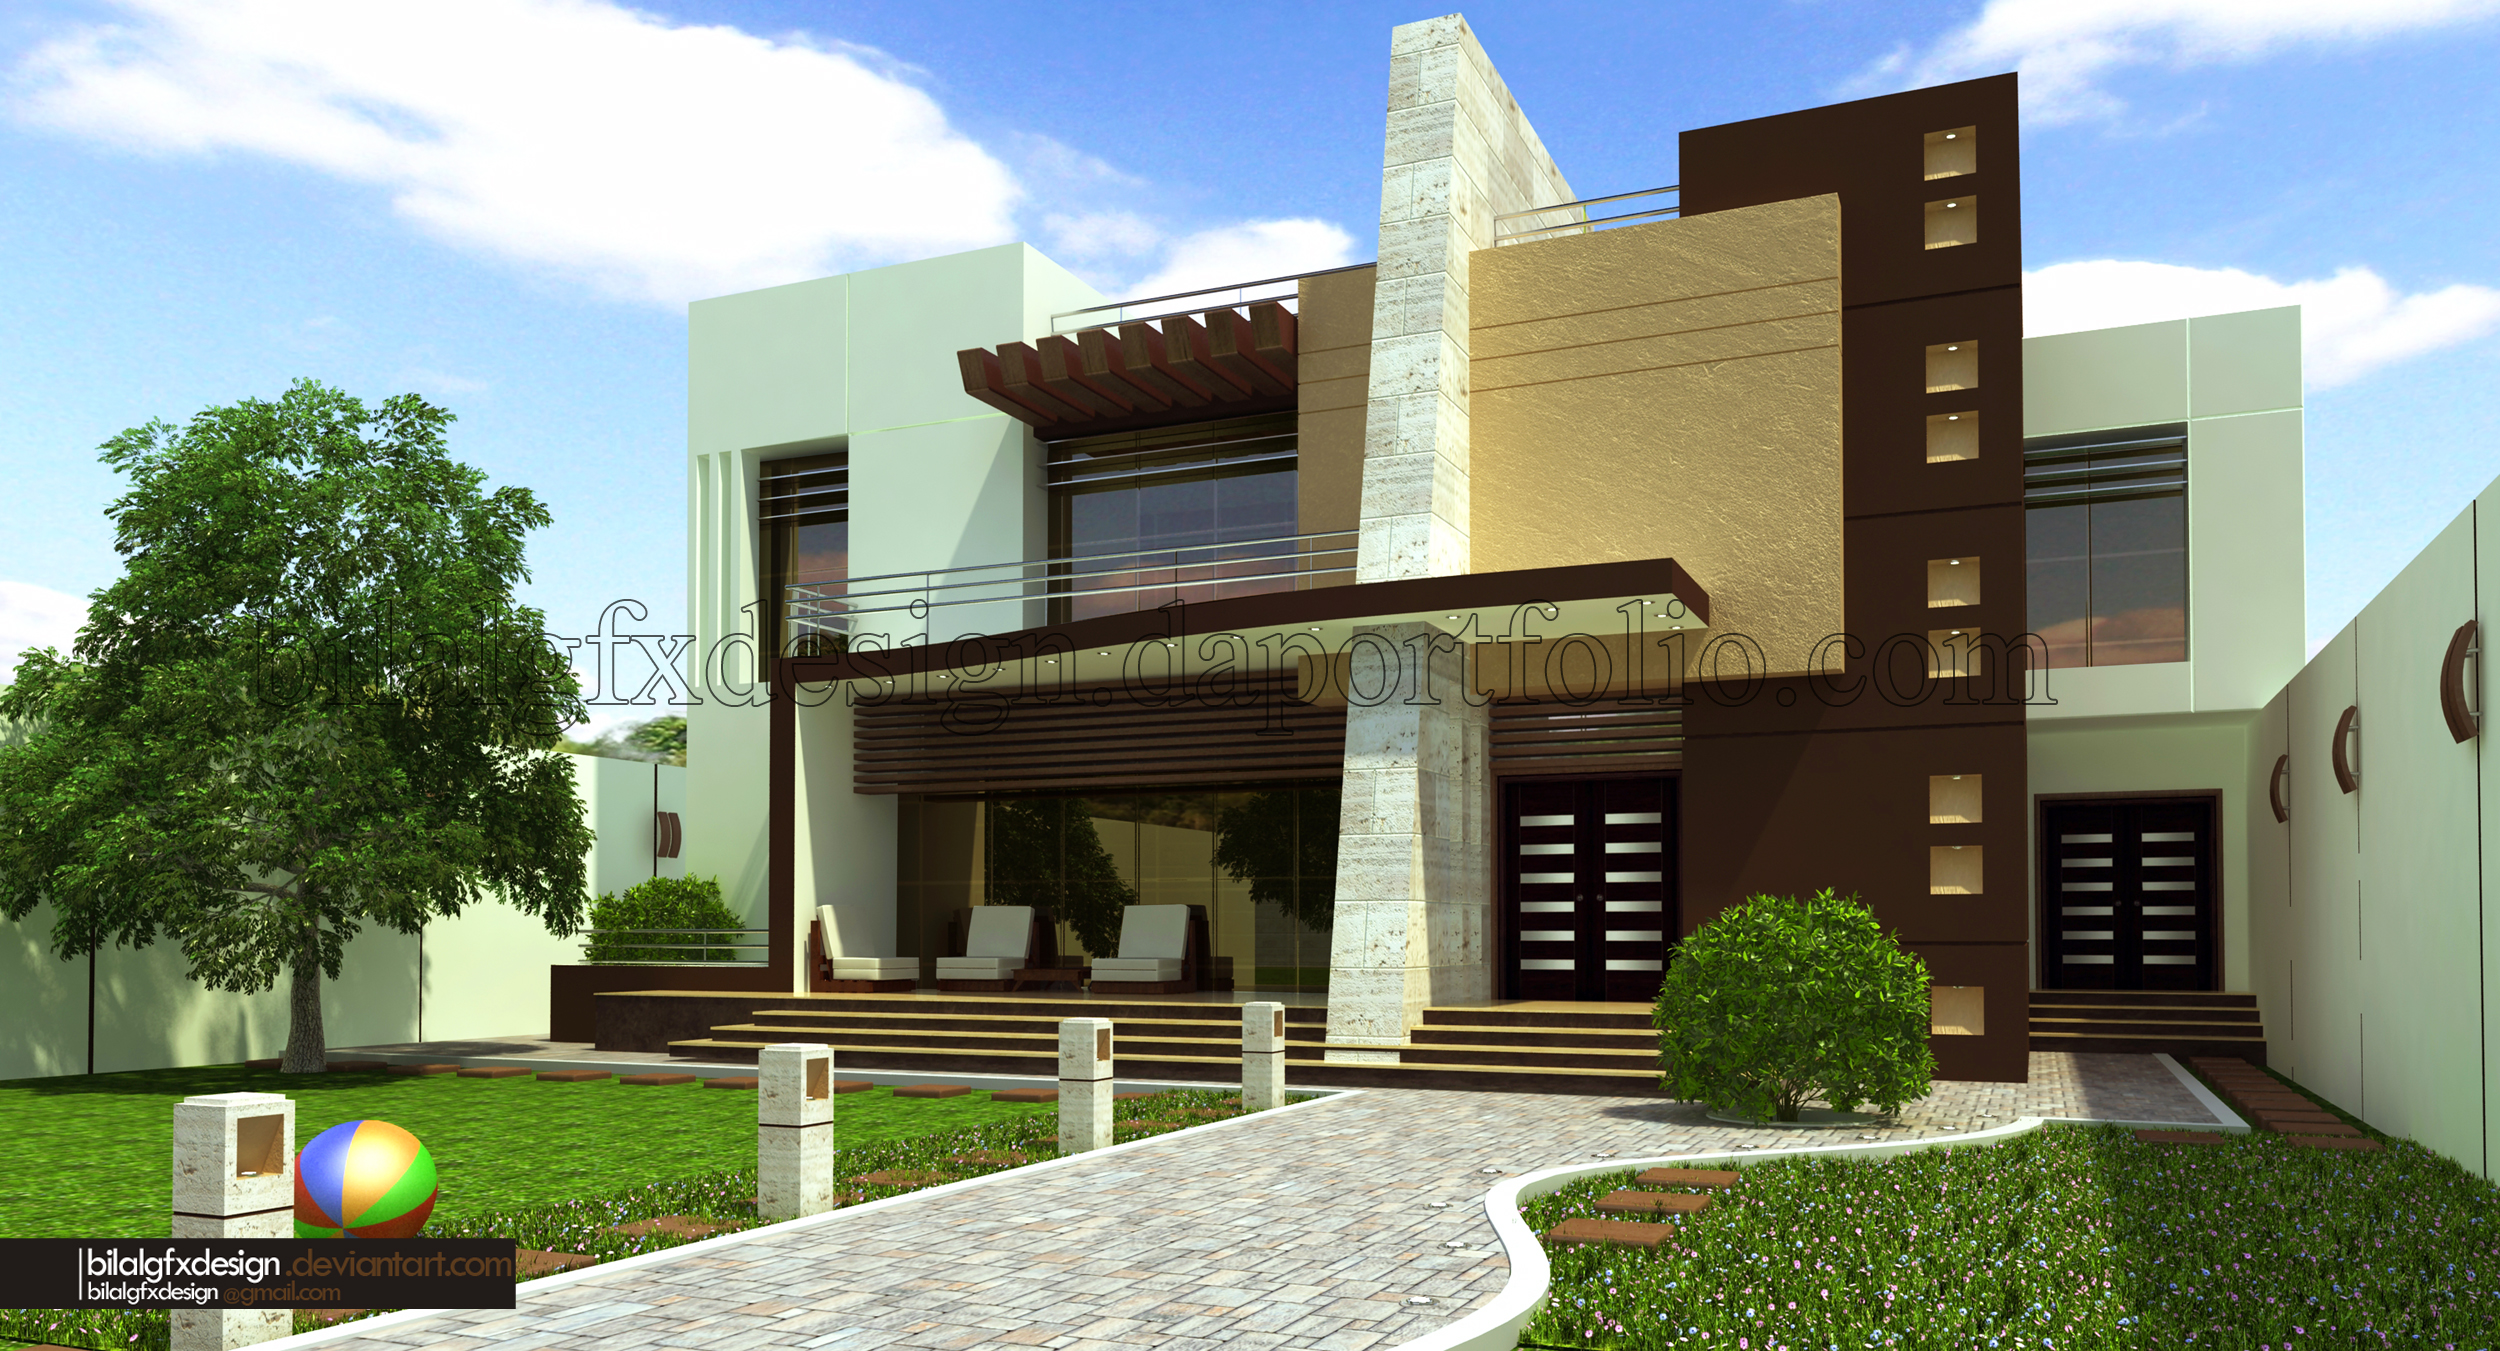 Modern villa 1 by bilalgfxdesign on deviantart - Ambience home design marbella ...